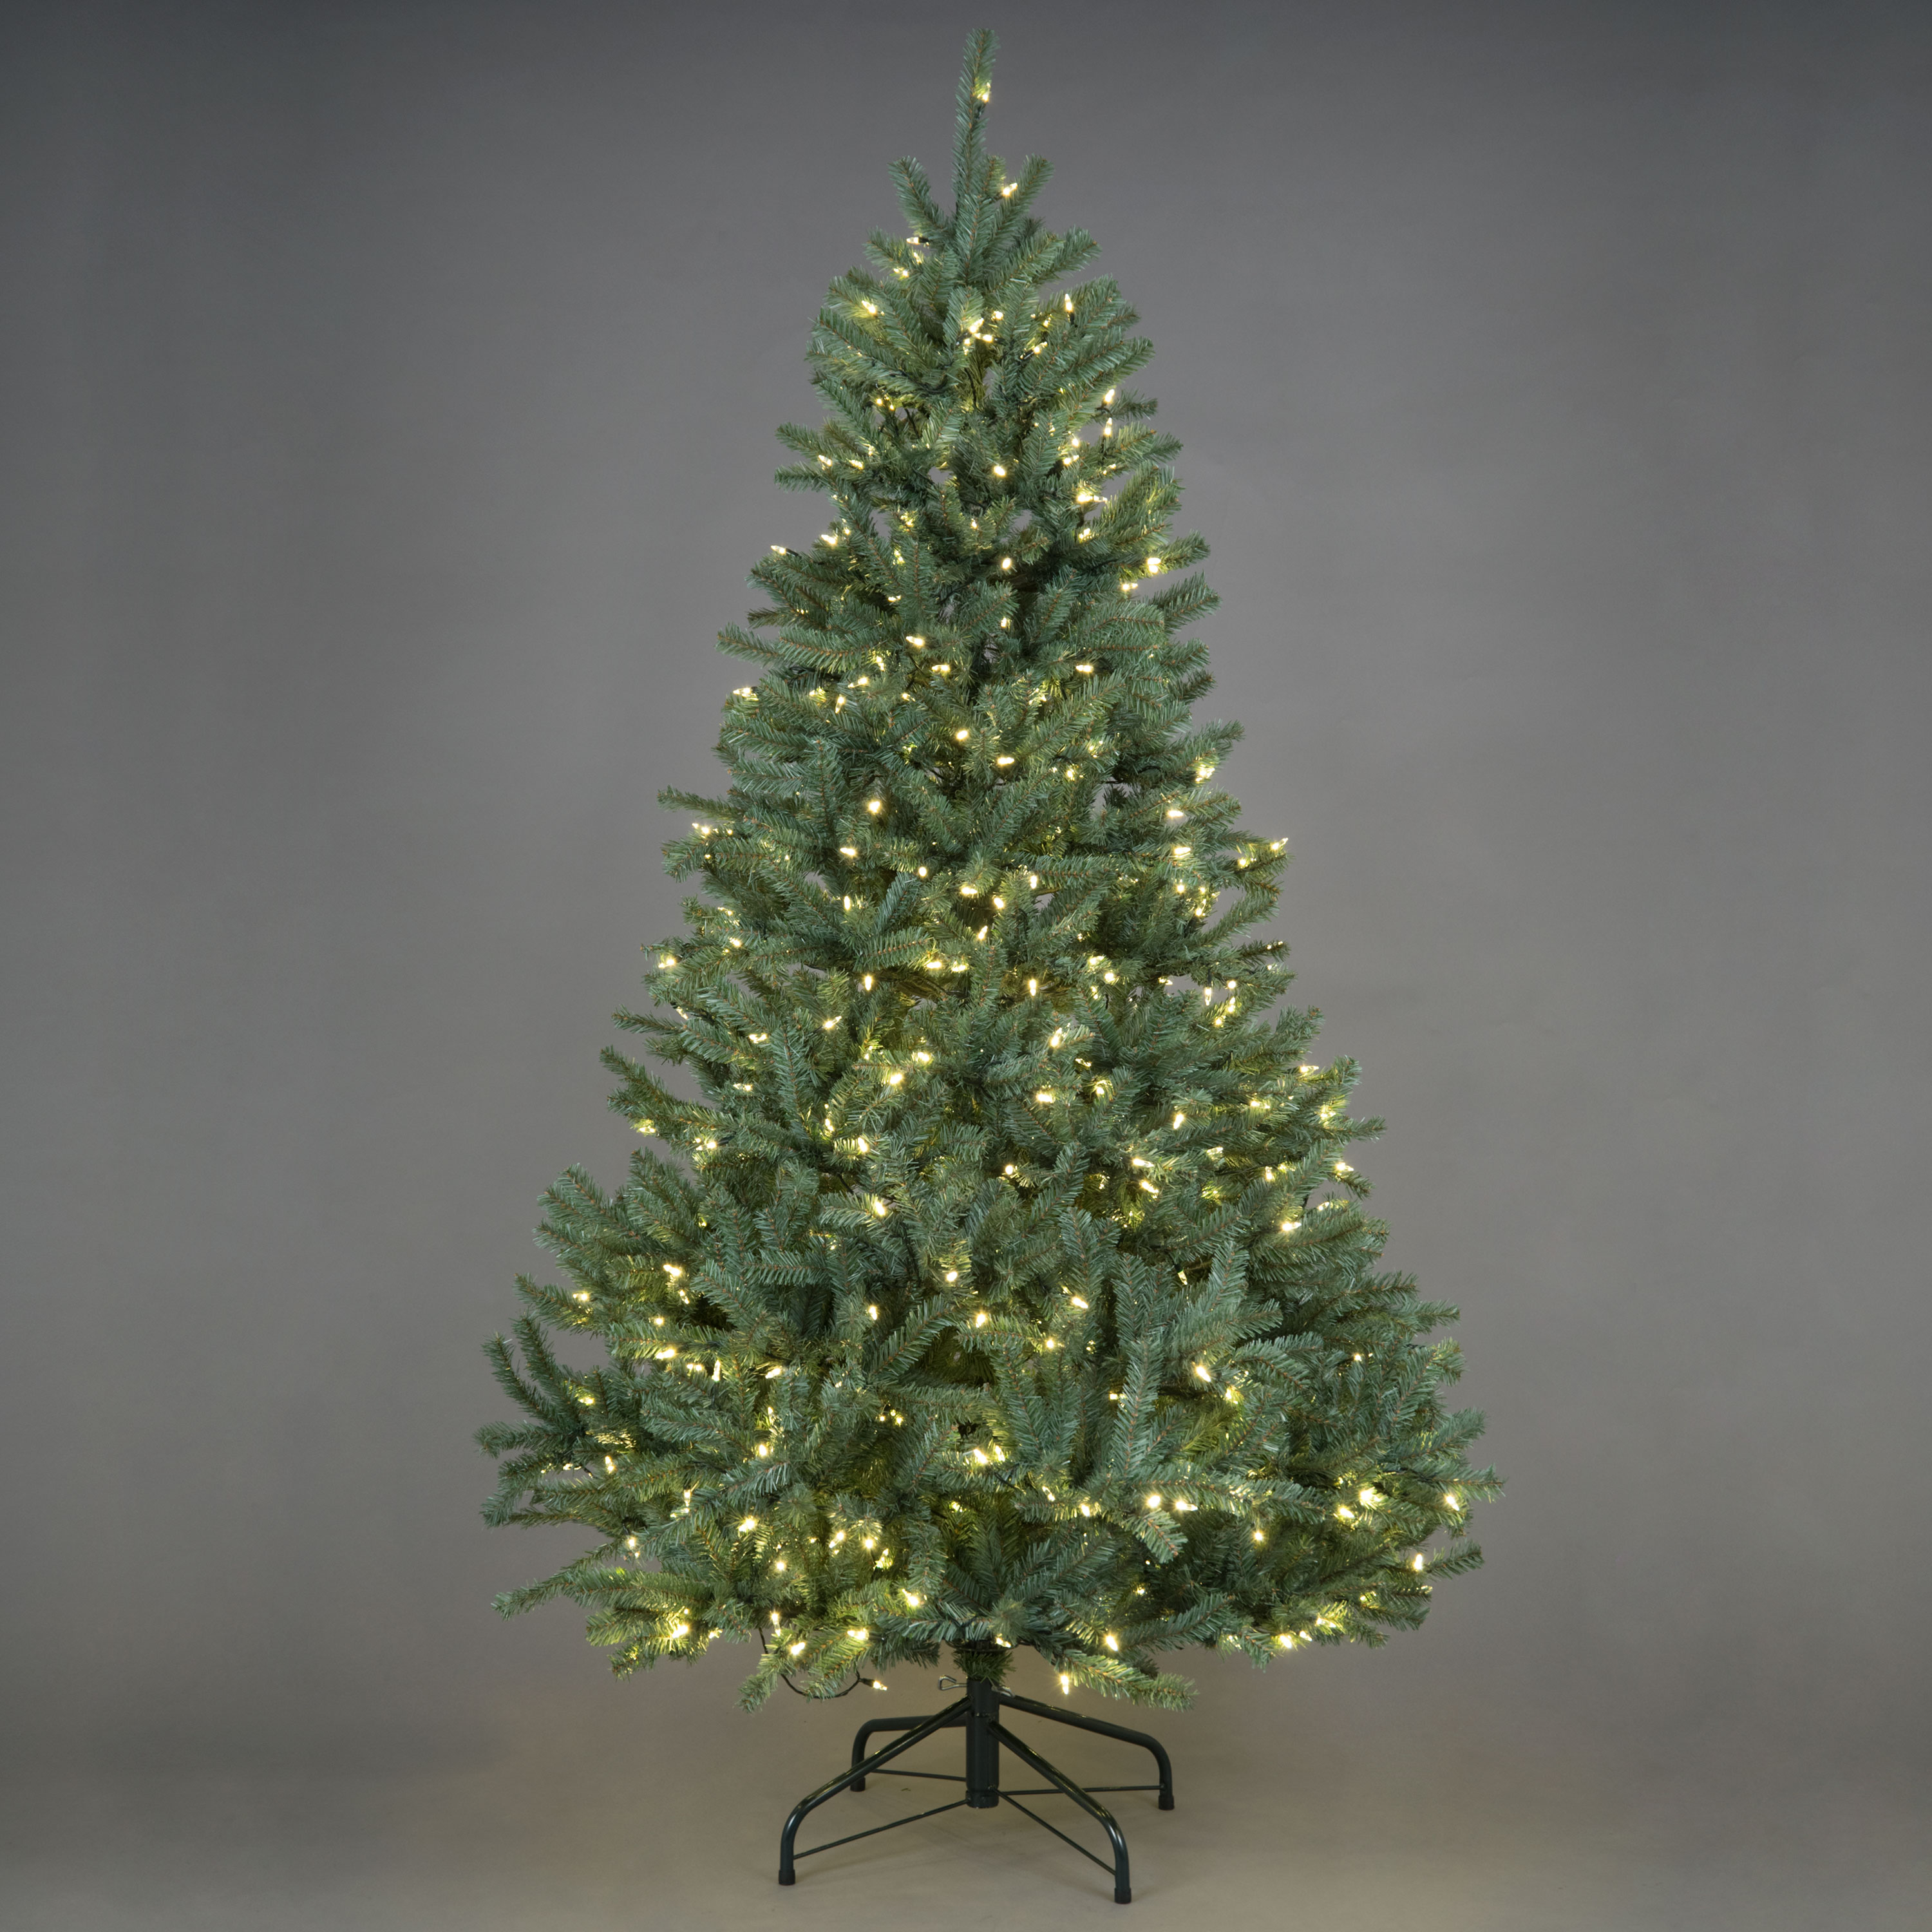 Artificial Christmas Tree Branches.Norway Blue Green Pre Lit Artificial Christmas Tree